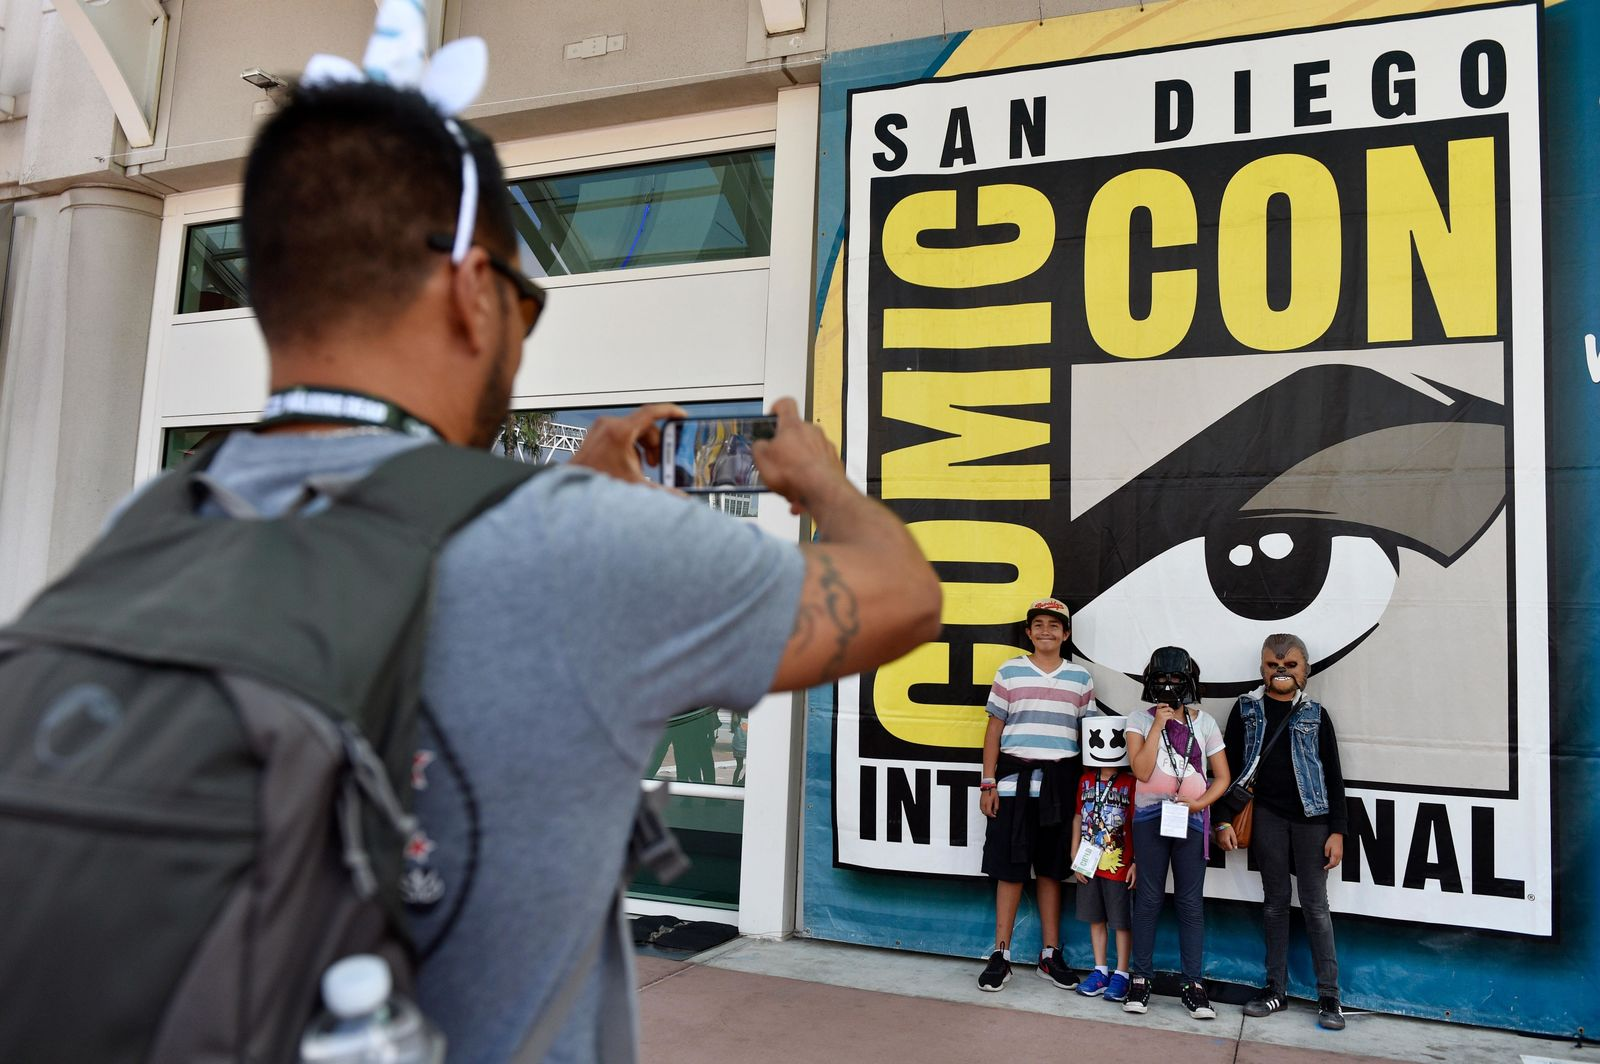 Luis Ramos, left, of San Diego takes a picture of his son Alek, 6, third from right, and daughter Anabel, 11, second from right, and their friends Emiliano Beltran, 12, fourth from right, and Isabel Beltran, 10, before Preview Night at the 2018 Comic-Con International at the San Diego Convention Center, Wednesday, July 18, 2018, in San Diego. (Photo by Chris Pizzello/Invision/AP)